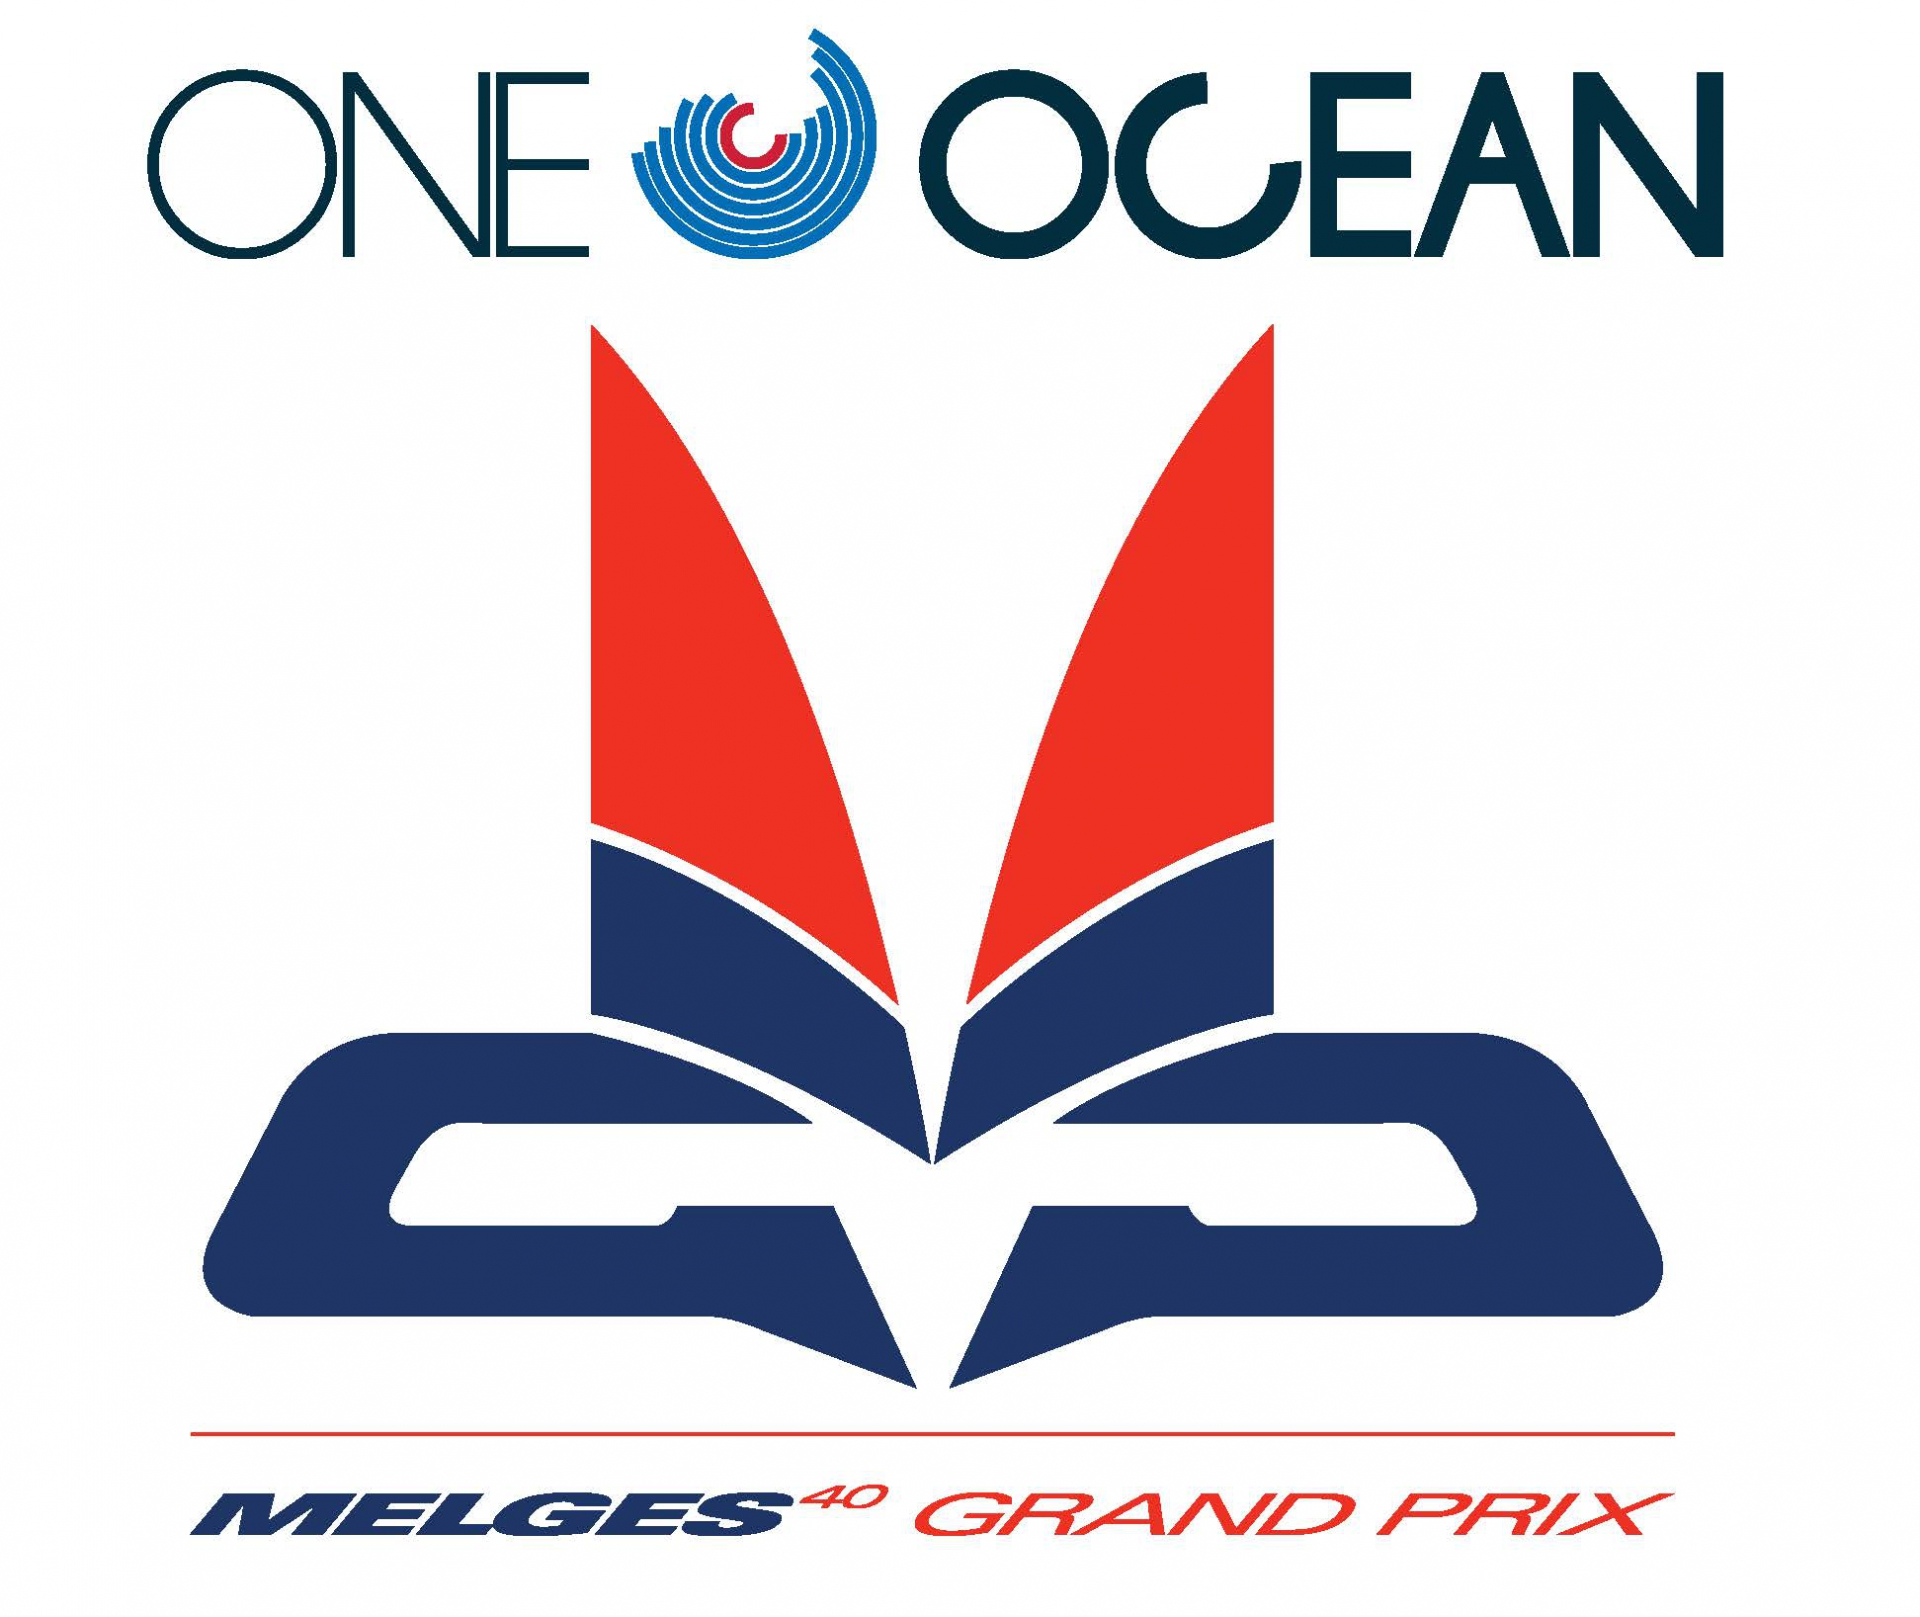 Yacht Club Costa Smeralda - Le Regate - One Ocean<BR /> Melges 40 Grand Prix